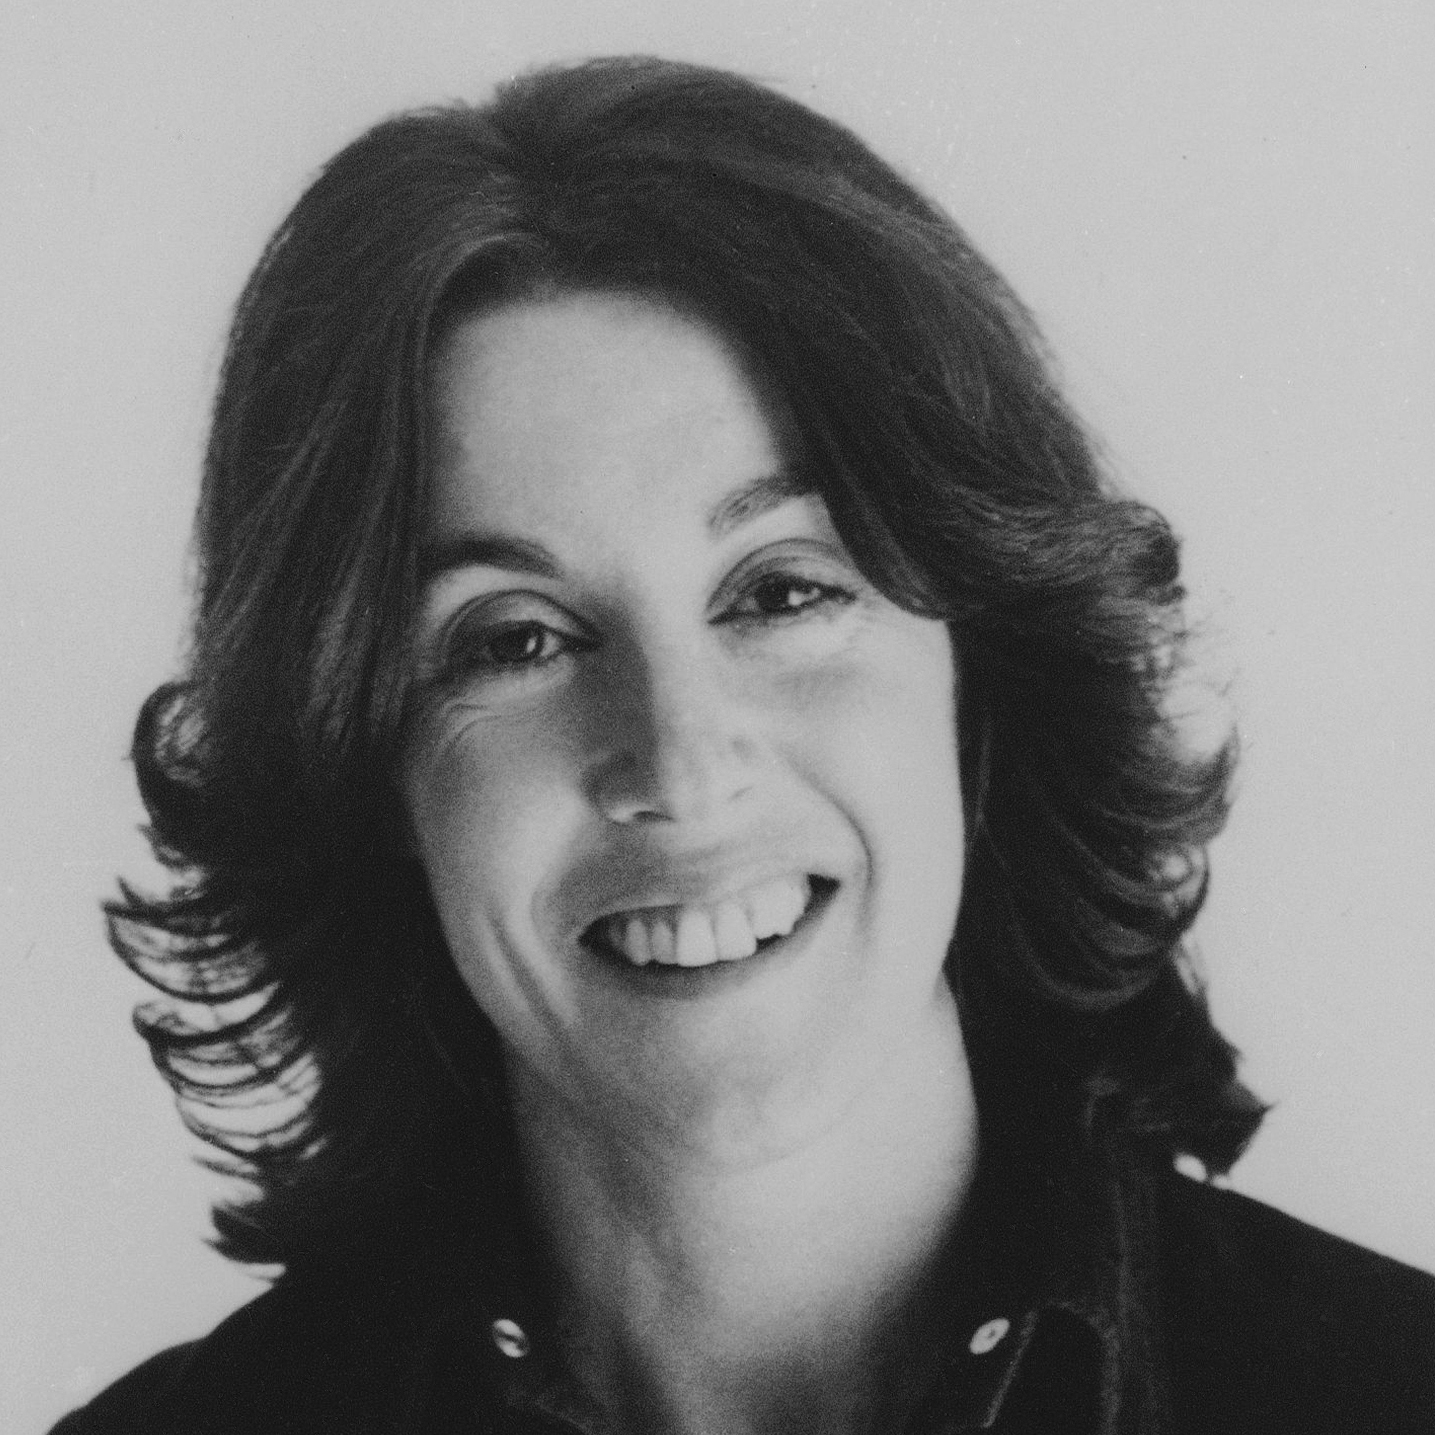 Author and screenwriter Nora Ephron, pictured above in 1976, died Tuesday in New York. She was 71.